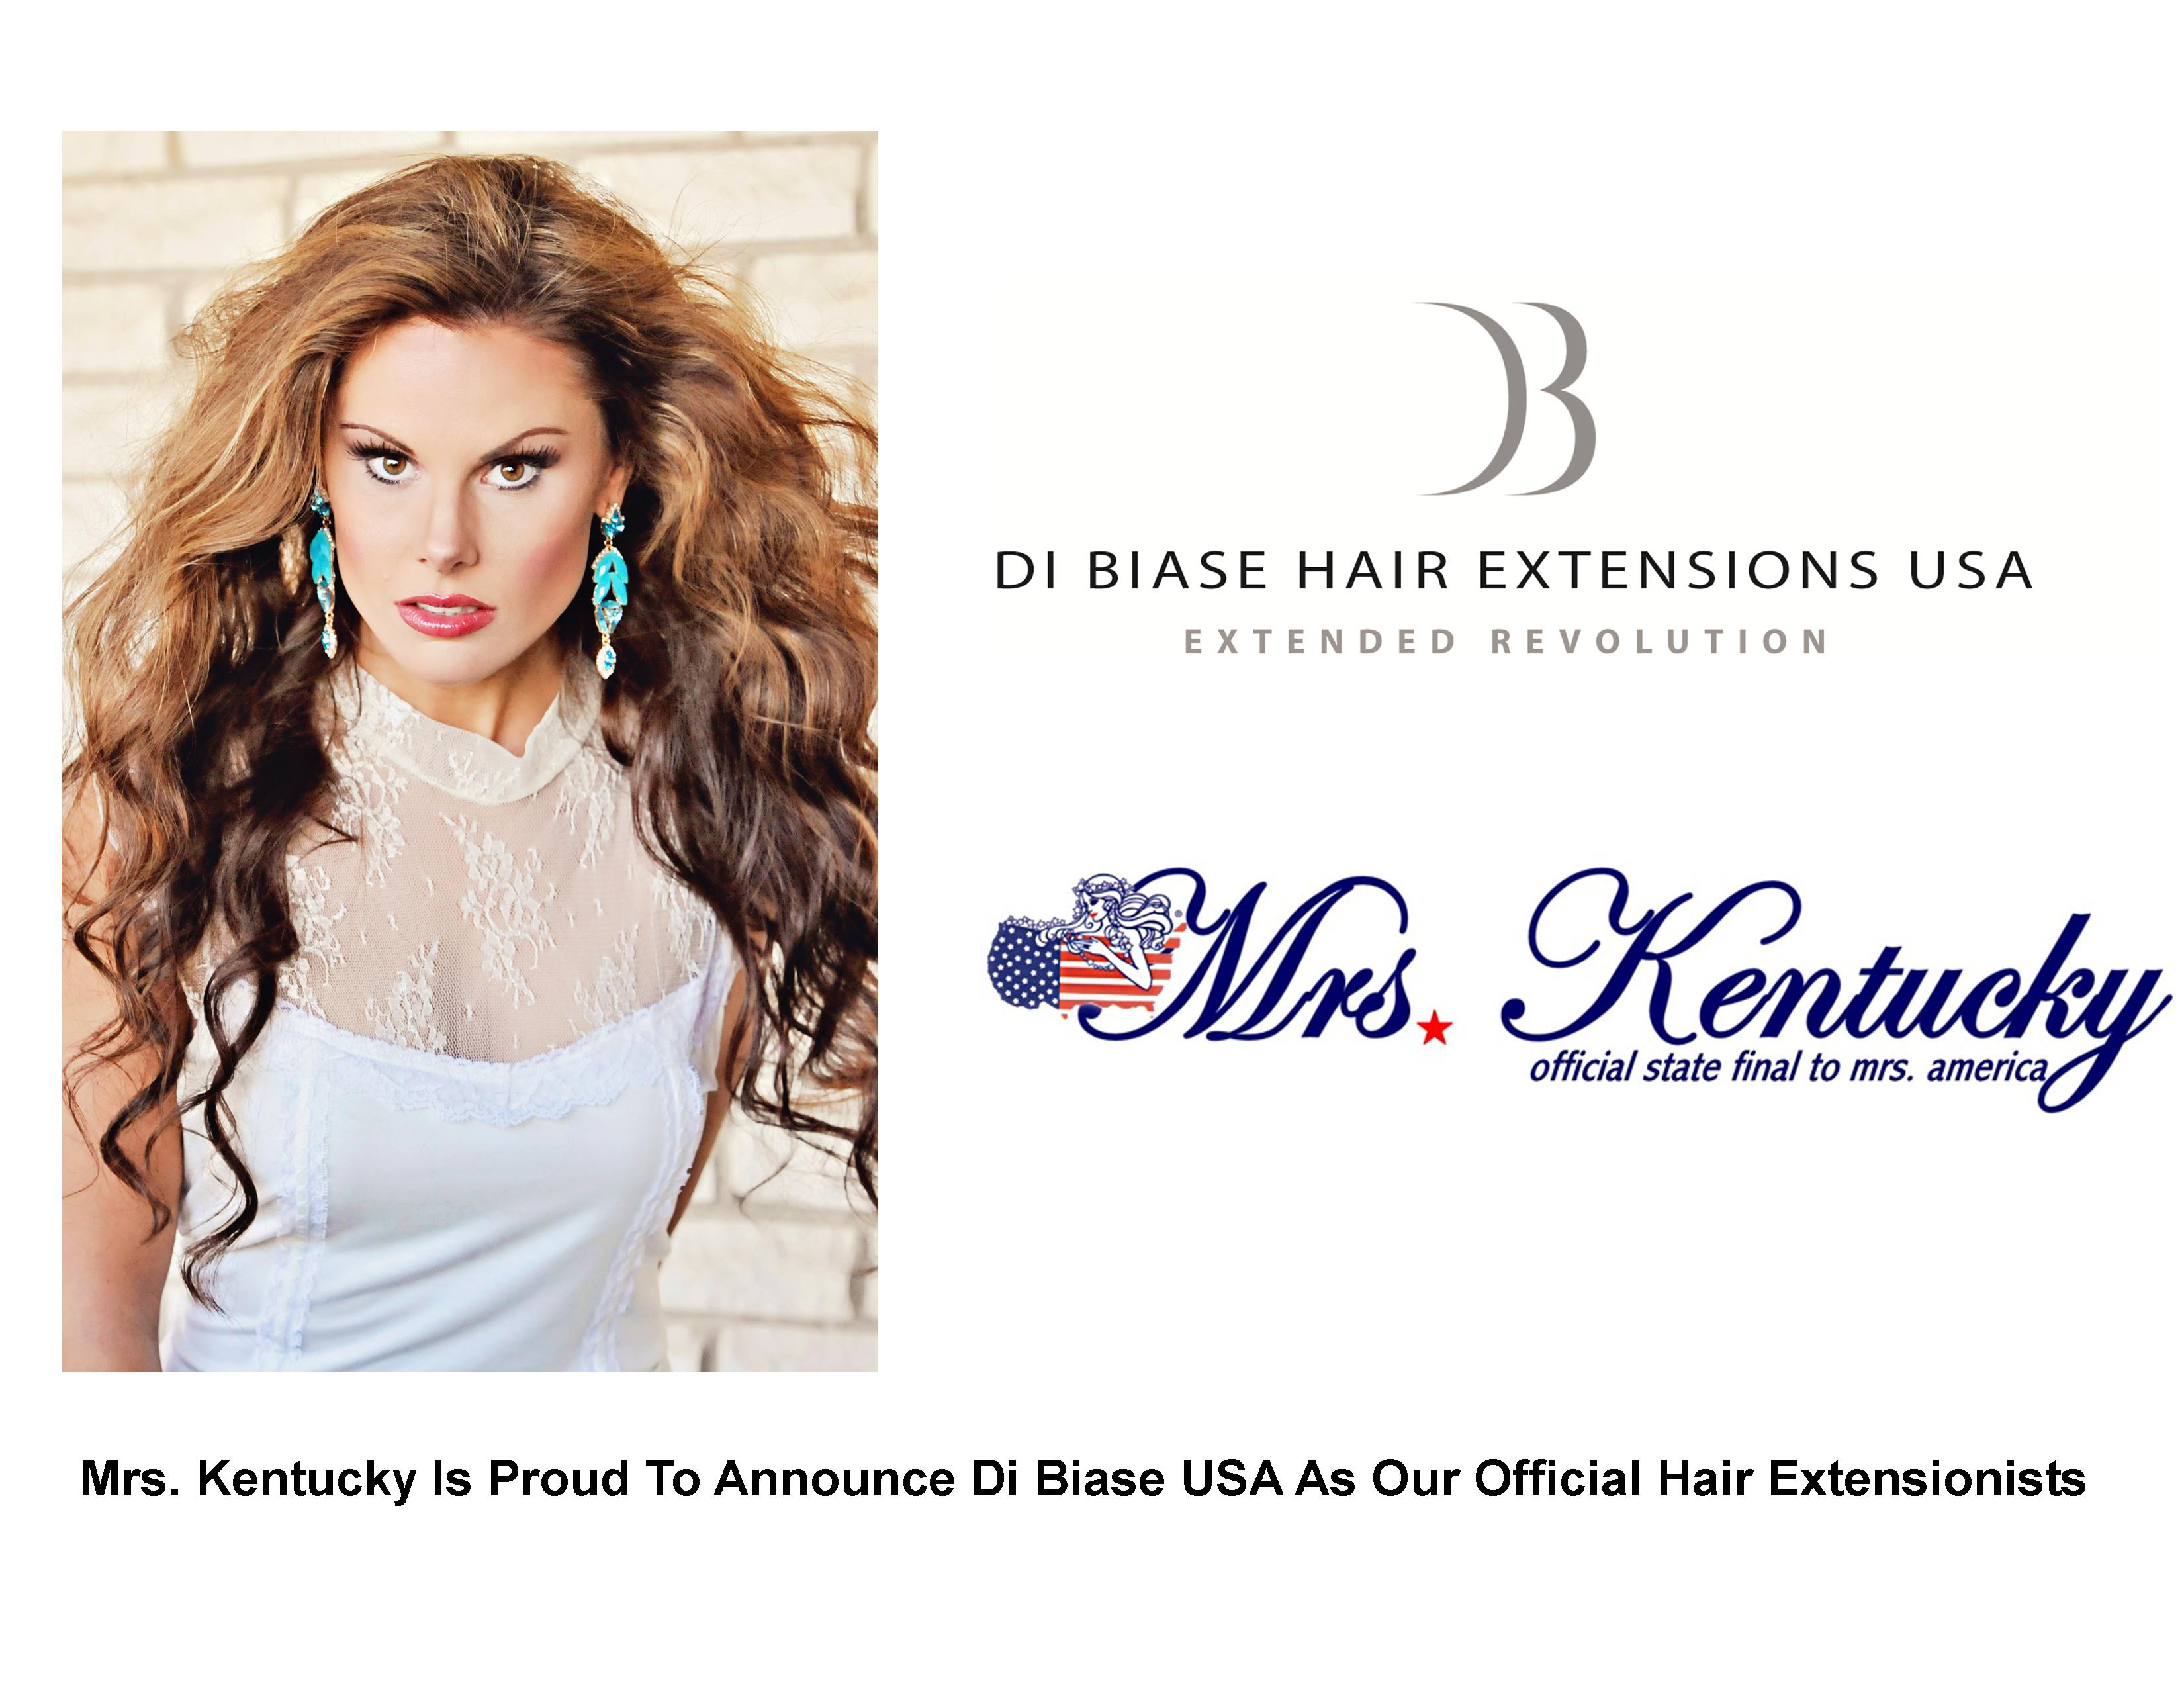 Di Biase Hair Extensions Usa Media And Events